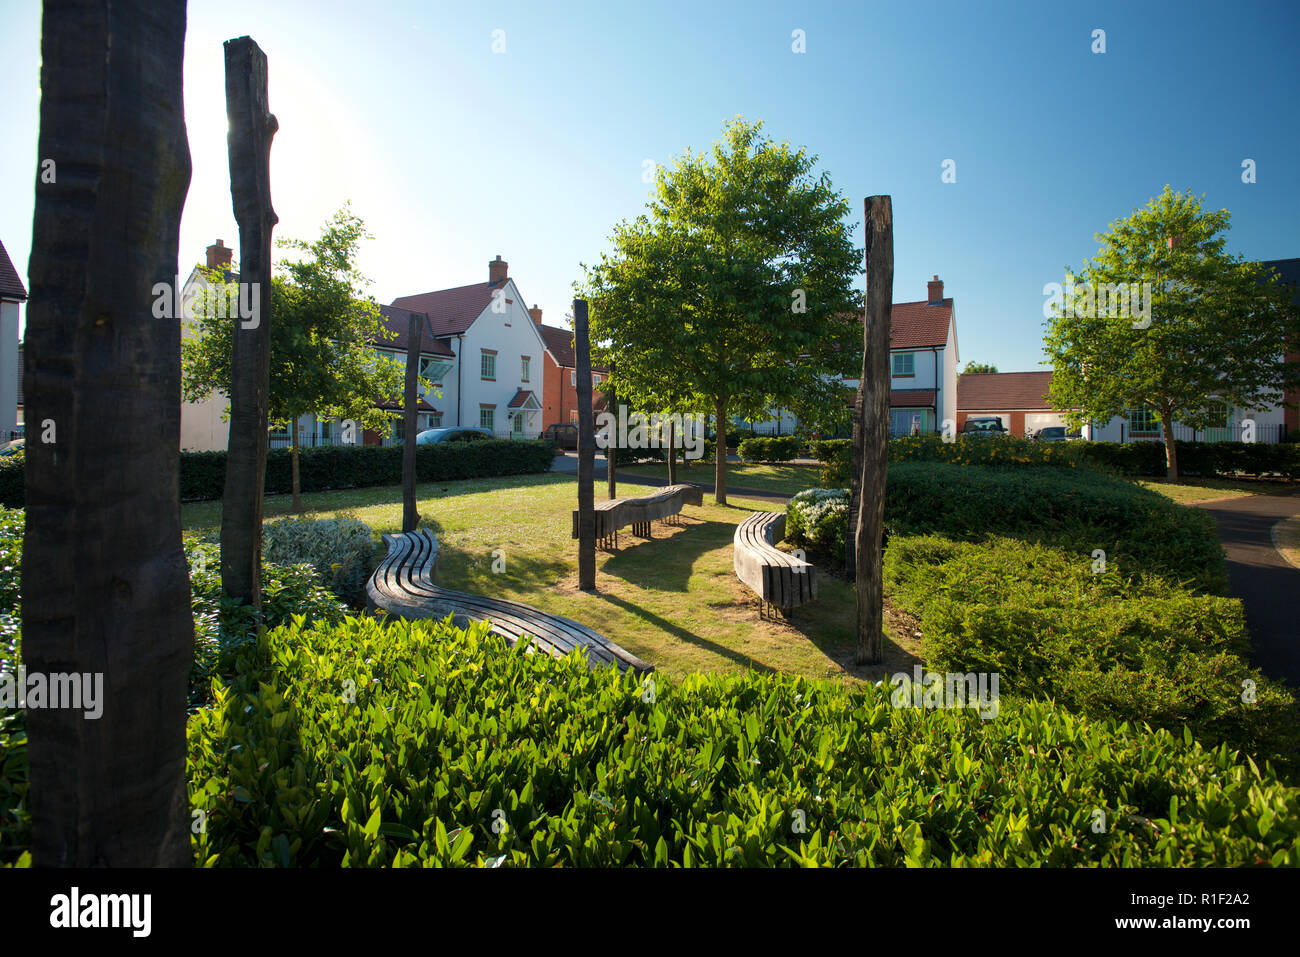 Town planning and urban planning. Communal areas of a new housing development to promote nature and communal play area. - Stock Image